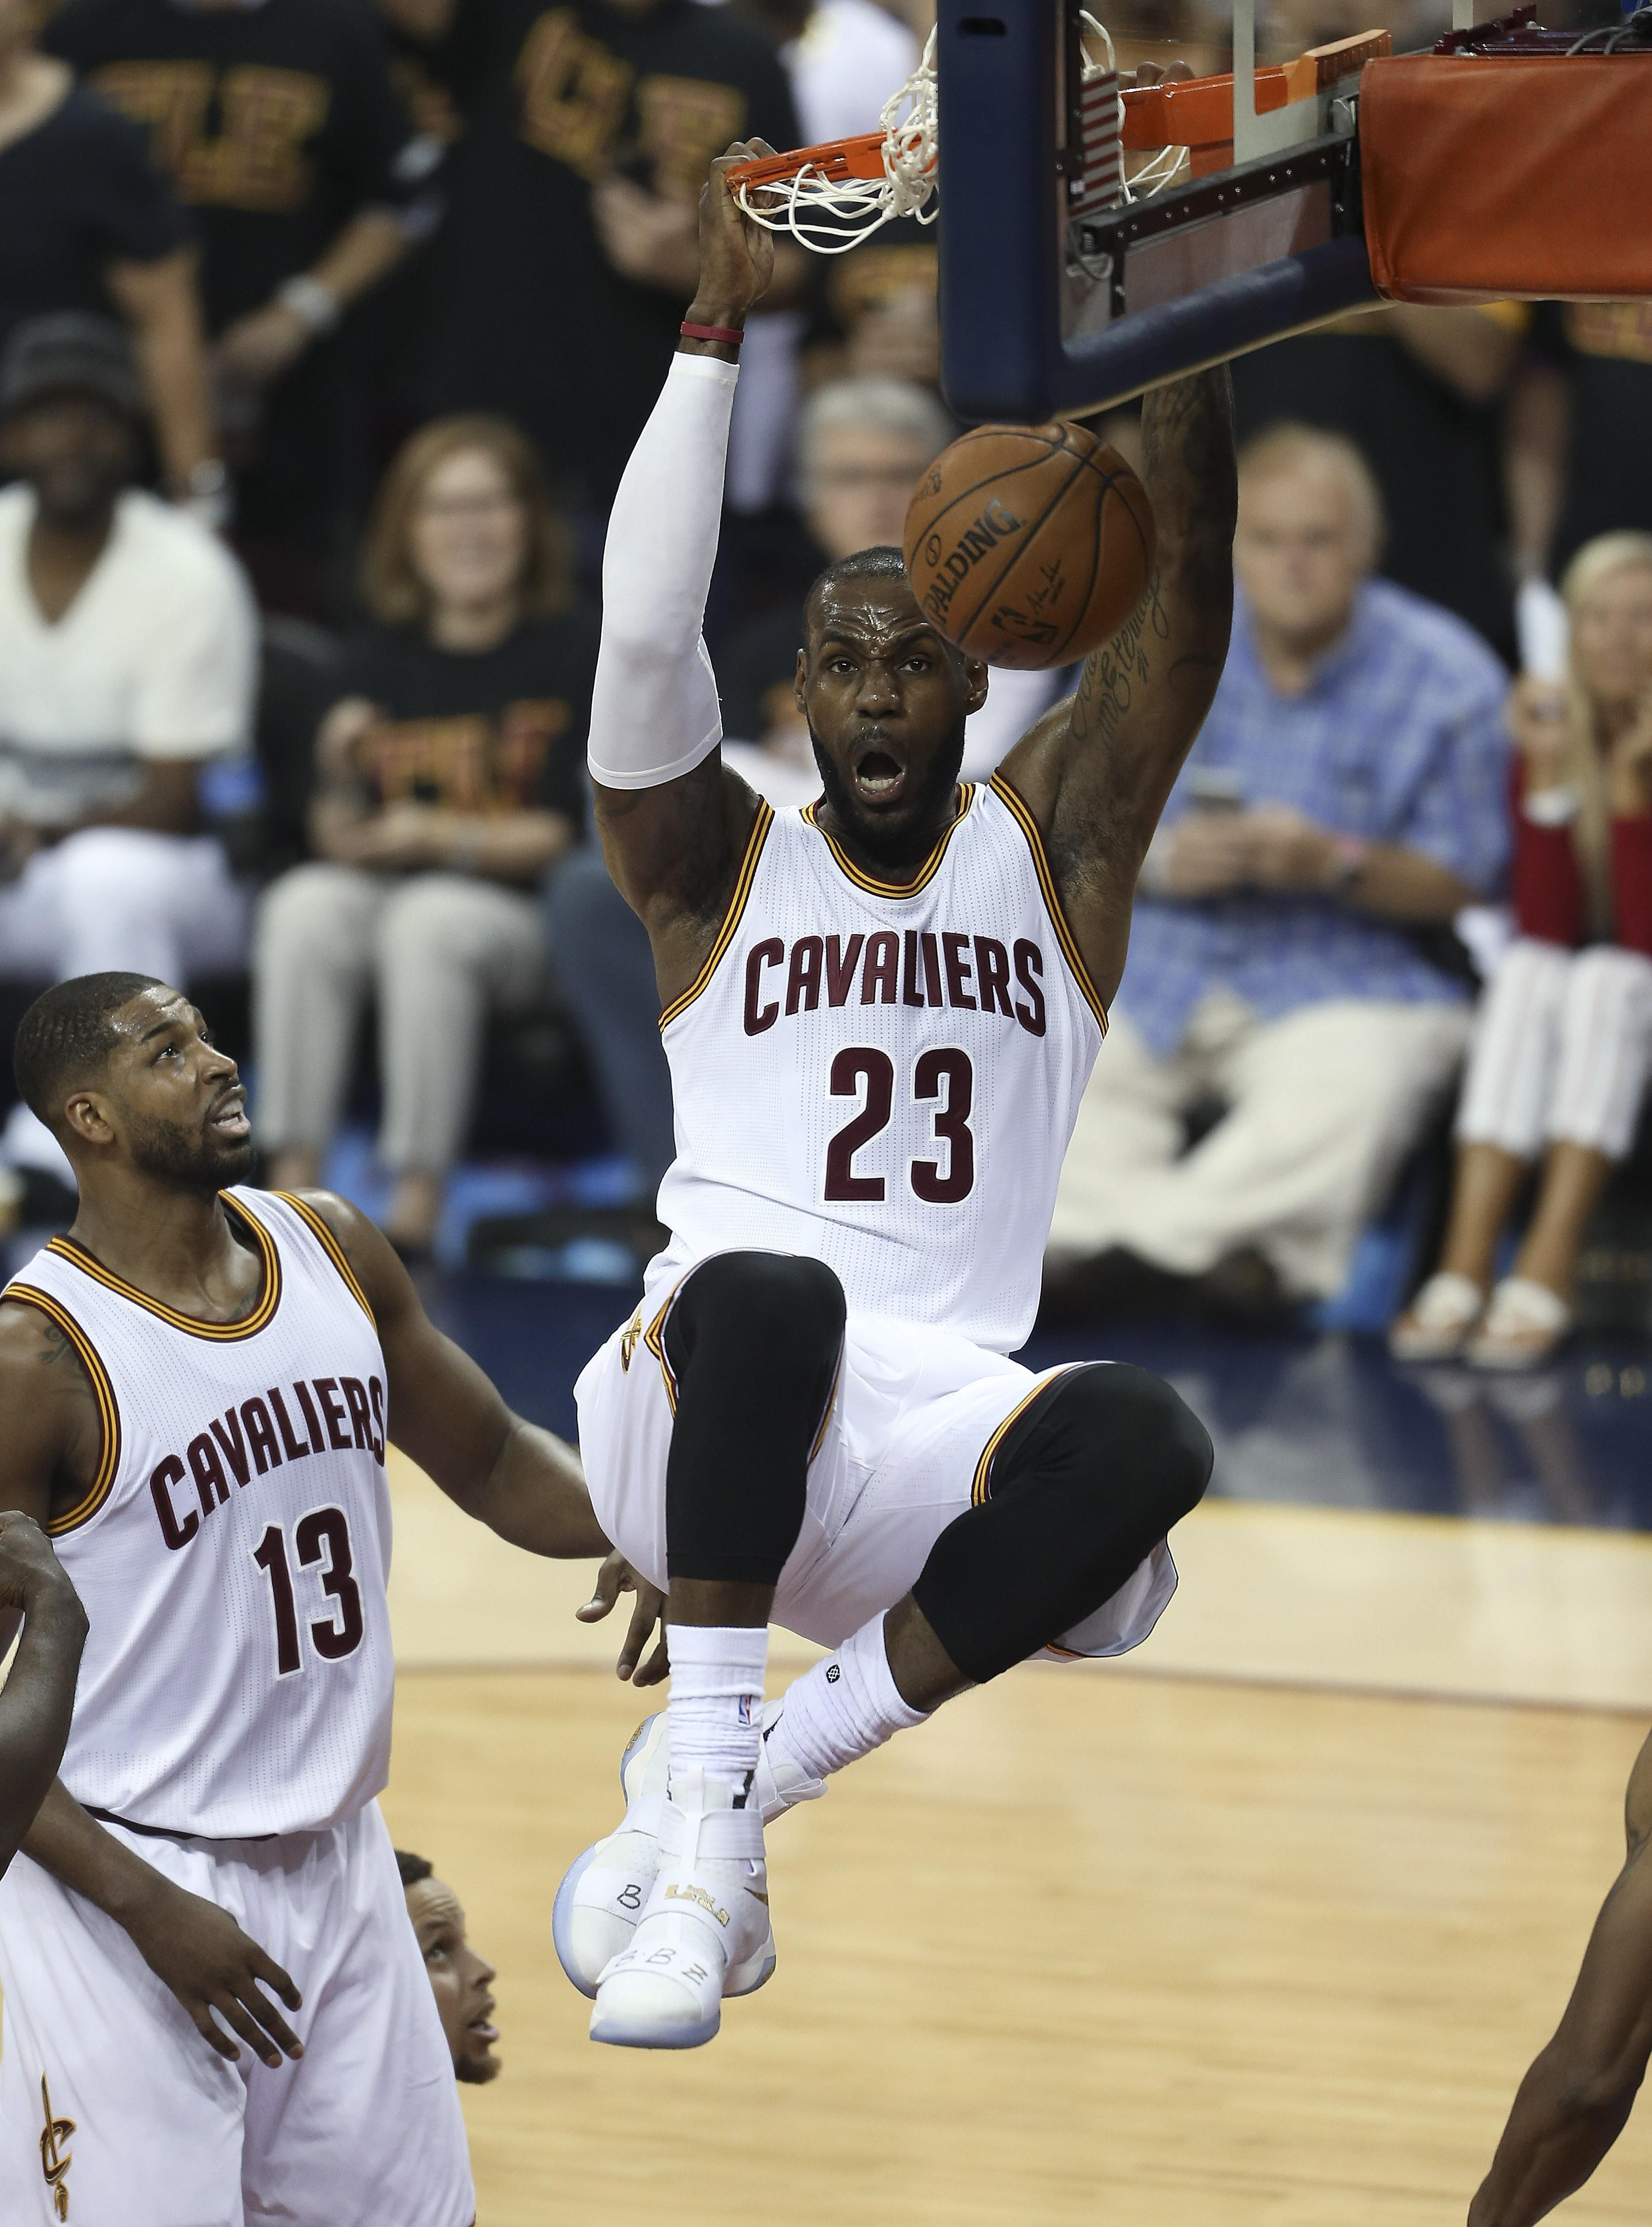 a1ed14a20f77d Cleveland Cavaliers forward LeBron James (23) dunks against the Golden  State Warriors during the first half of Game 6 of basketball s NBA Finals  in ...